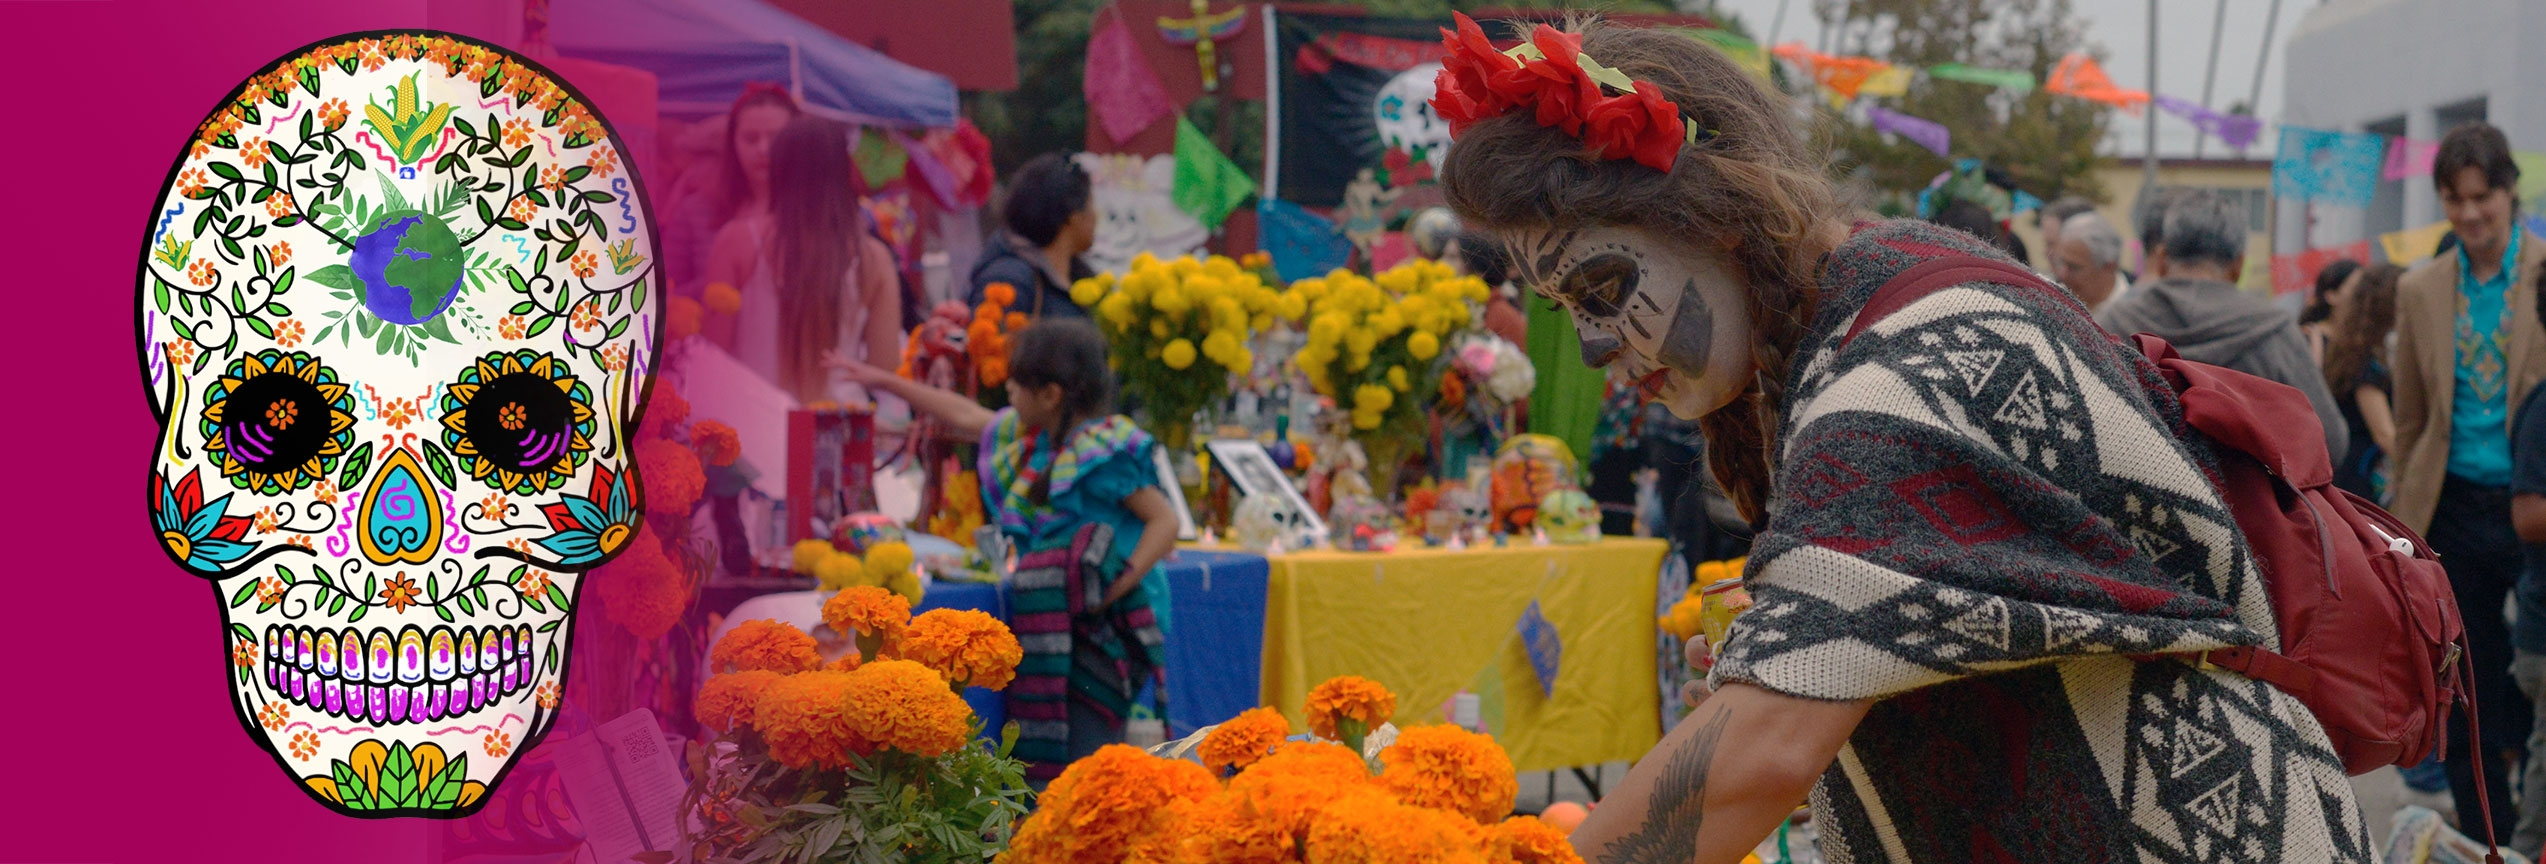 Our 17th Annual Día de Los Muertos Celebration